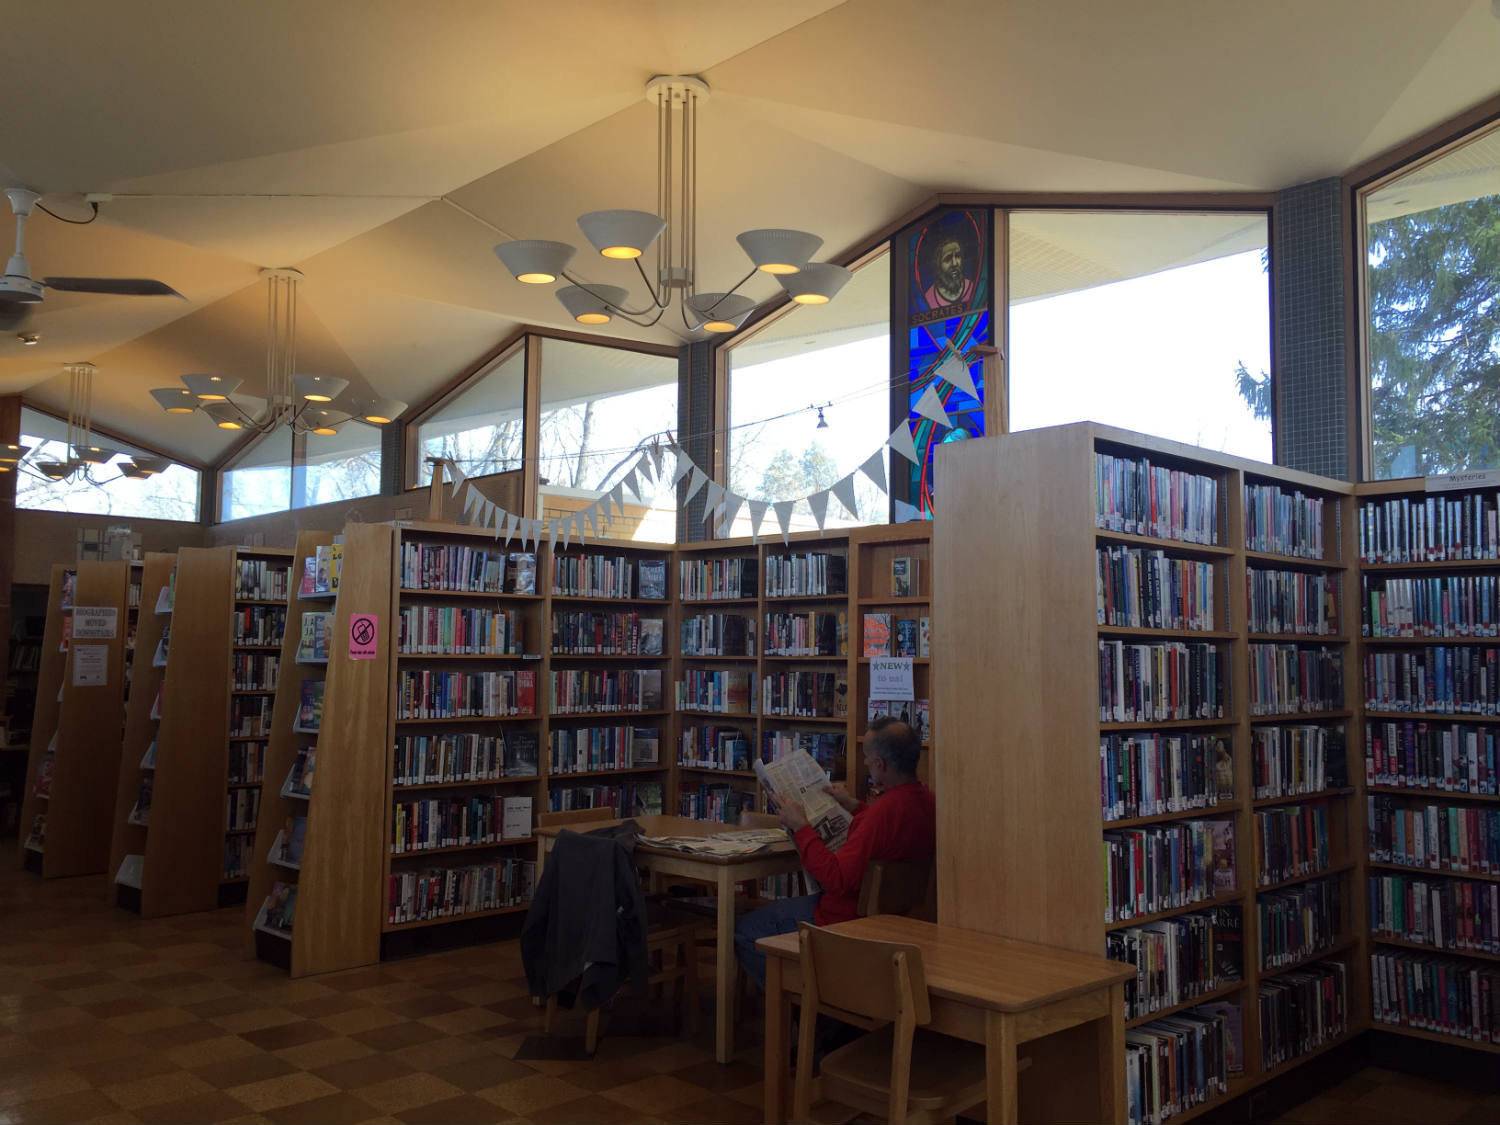 Inside The Edith B. Ford Memorial Library in Ovid, New York